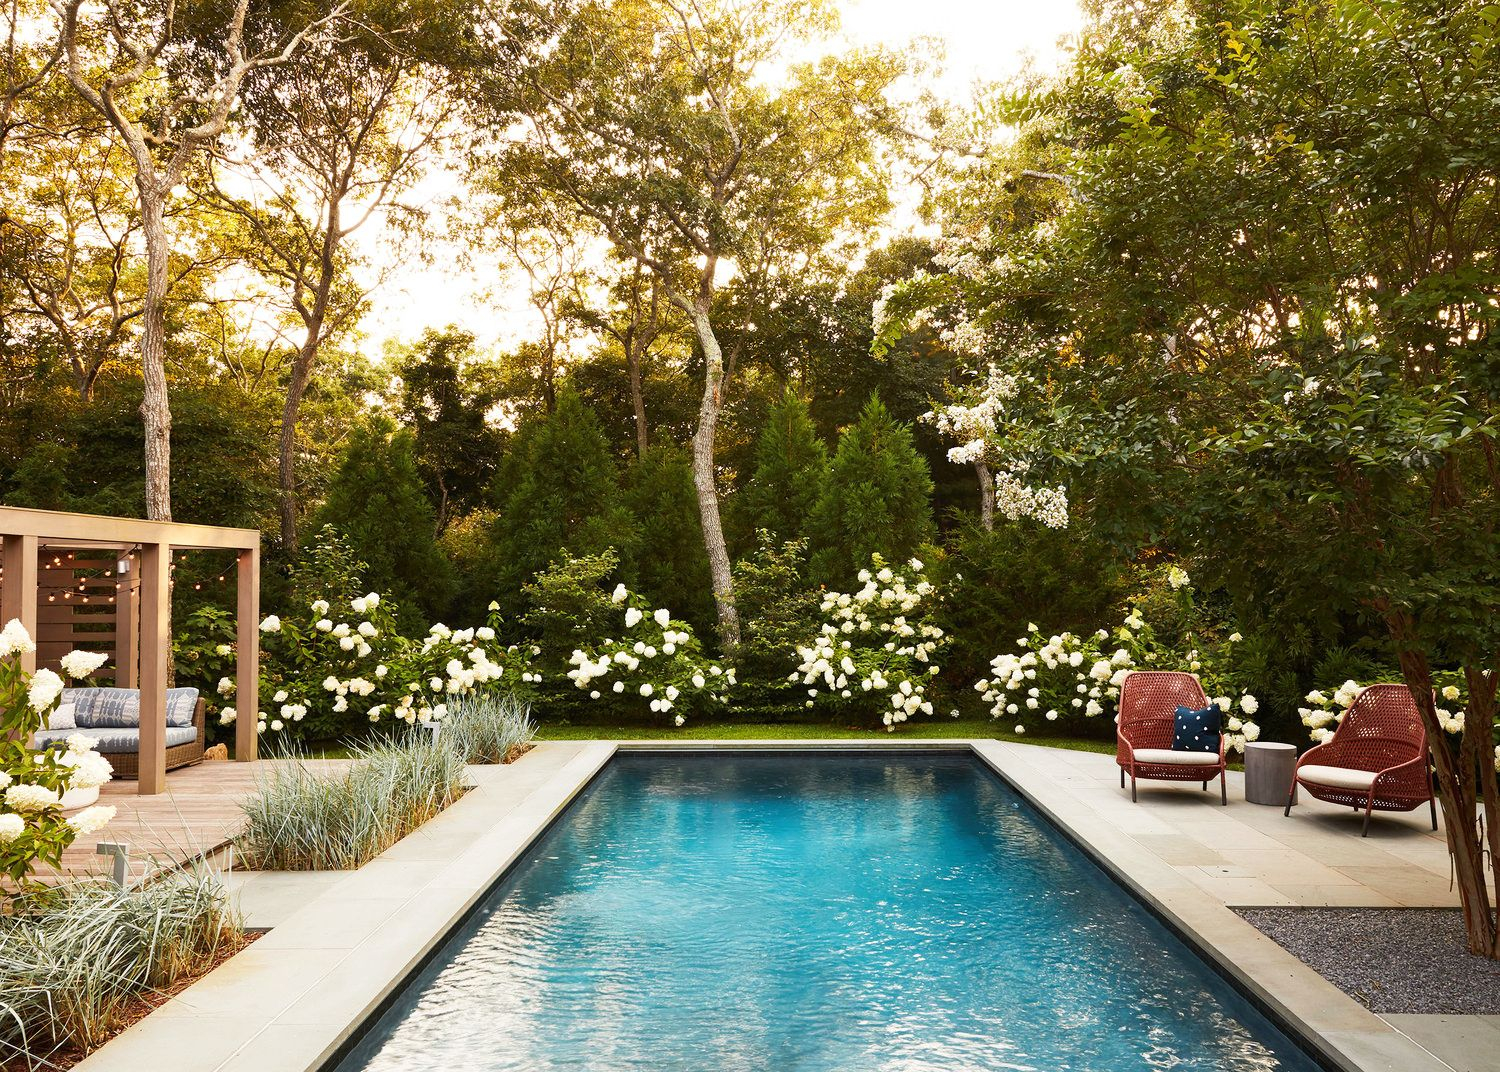 37 Breathtaking Backyard Ideas Outdoor Space Design Inspiration throughout 13 Awesome Ways How to Make Nice Backyard Landscaping Ideas